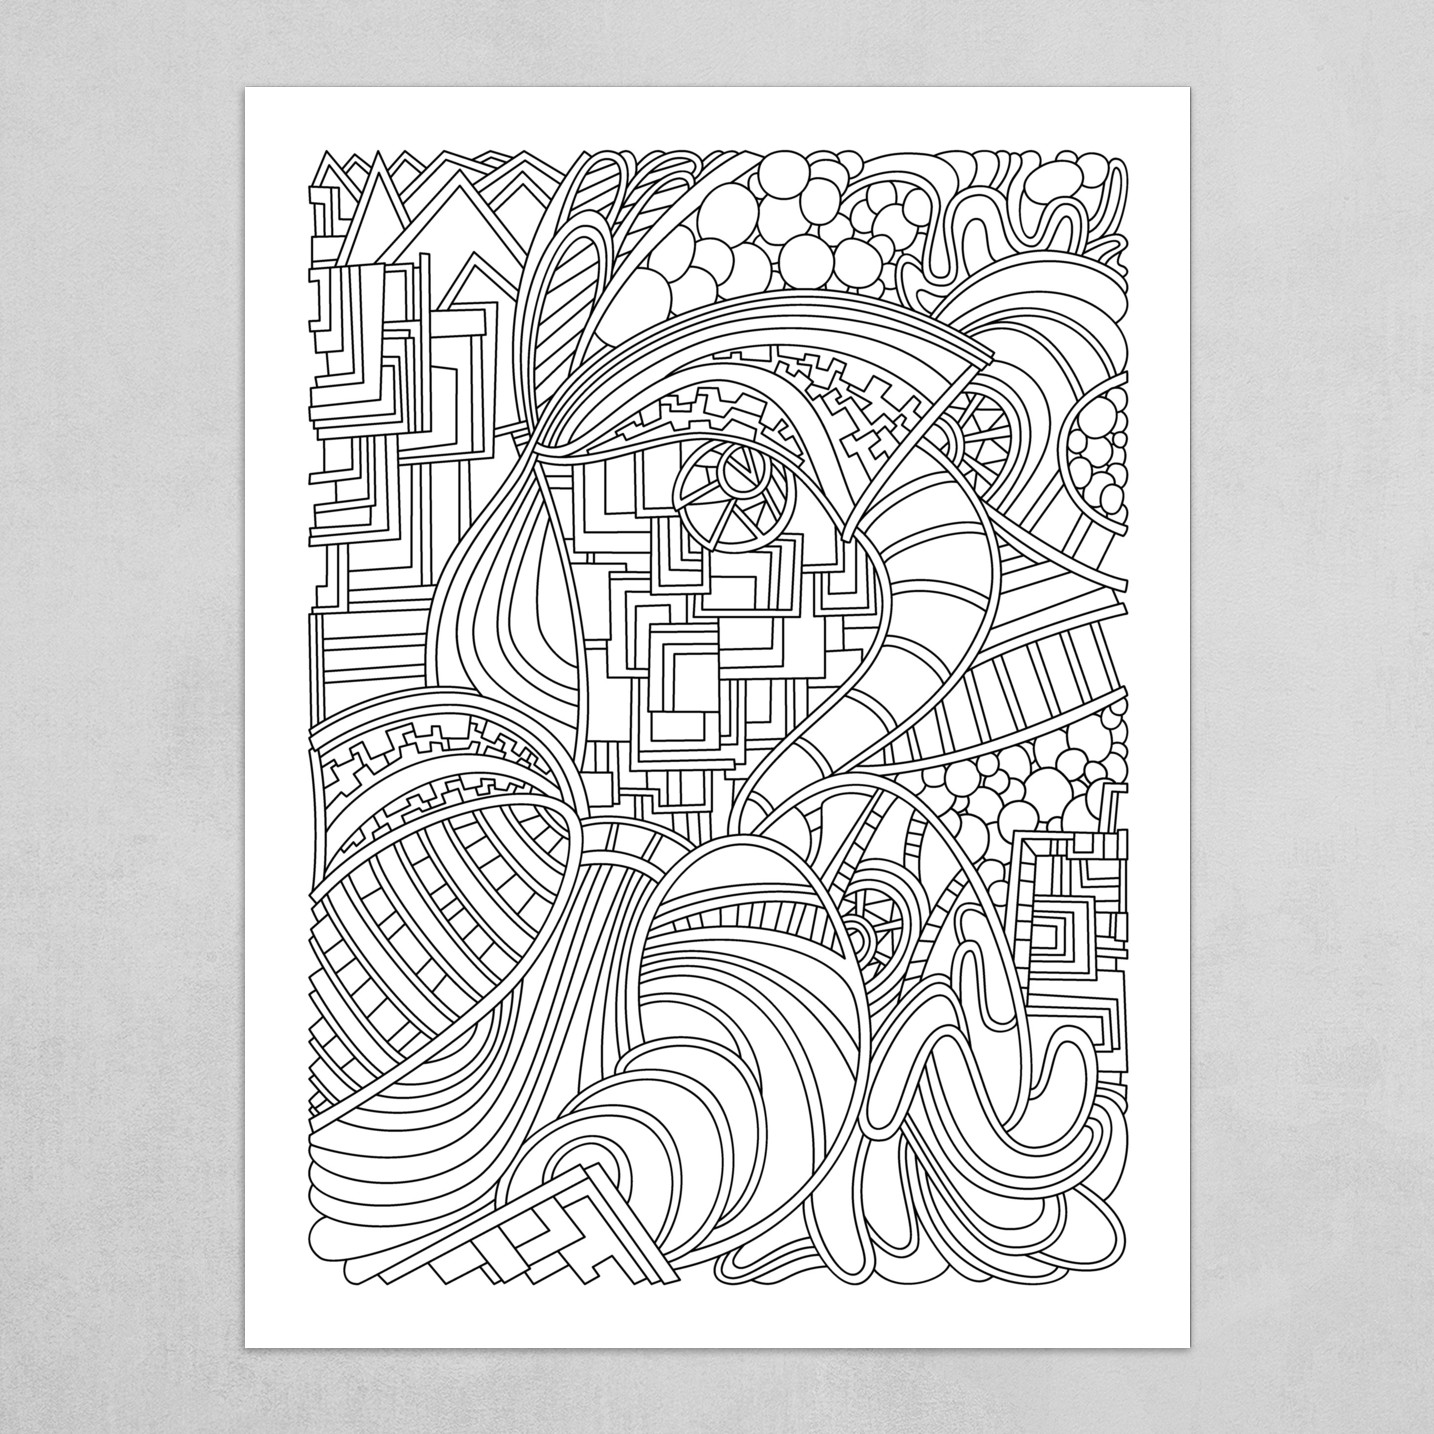 Wandering Abstract Line Art 48: Black & White